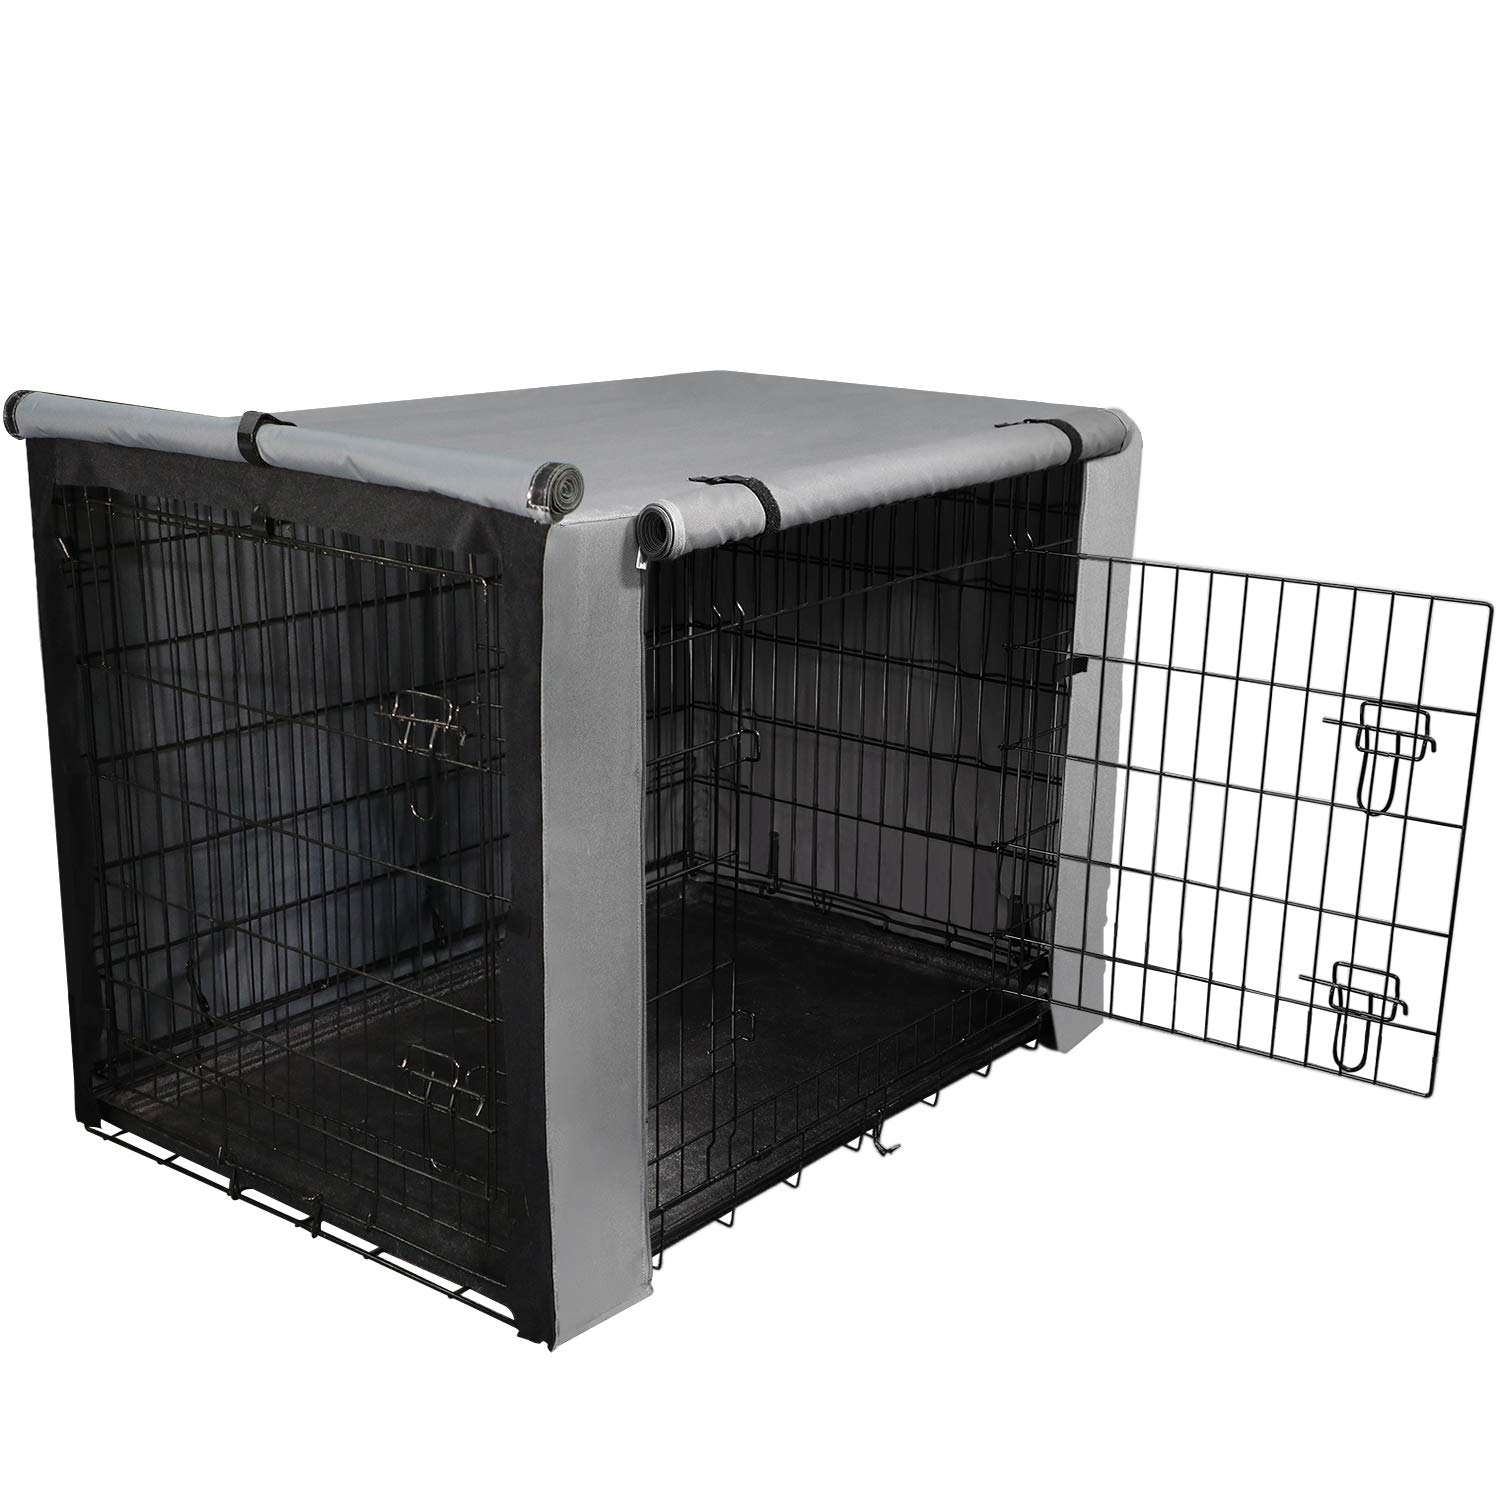 yotache Dog Crate Cover for 48'' Extra Large Double Door Wire Dog Cage, Lightweight 600D Polyester Indoor/Outdoor Durable Waterproof & Windproof Pet Kennel Covers, Gray